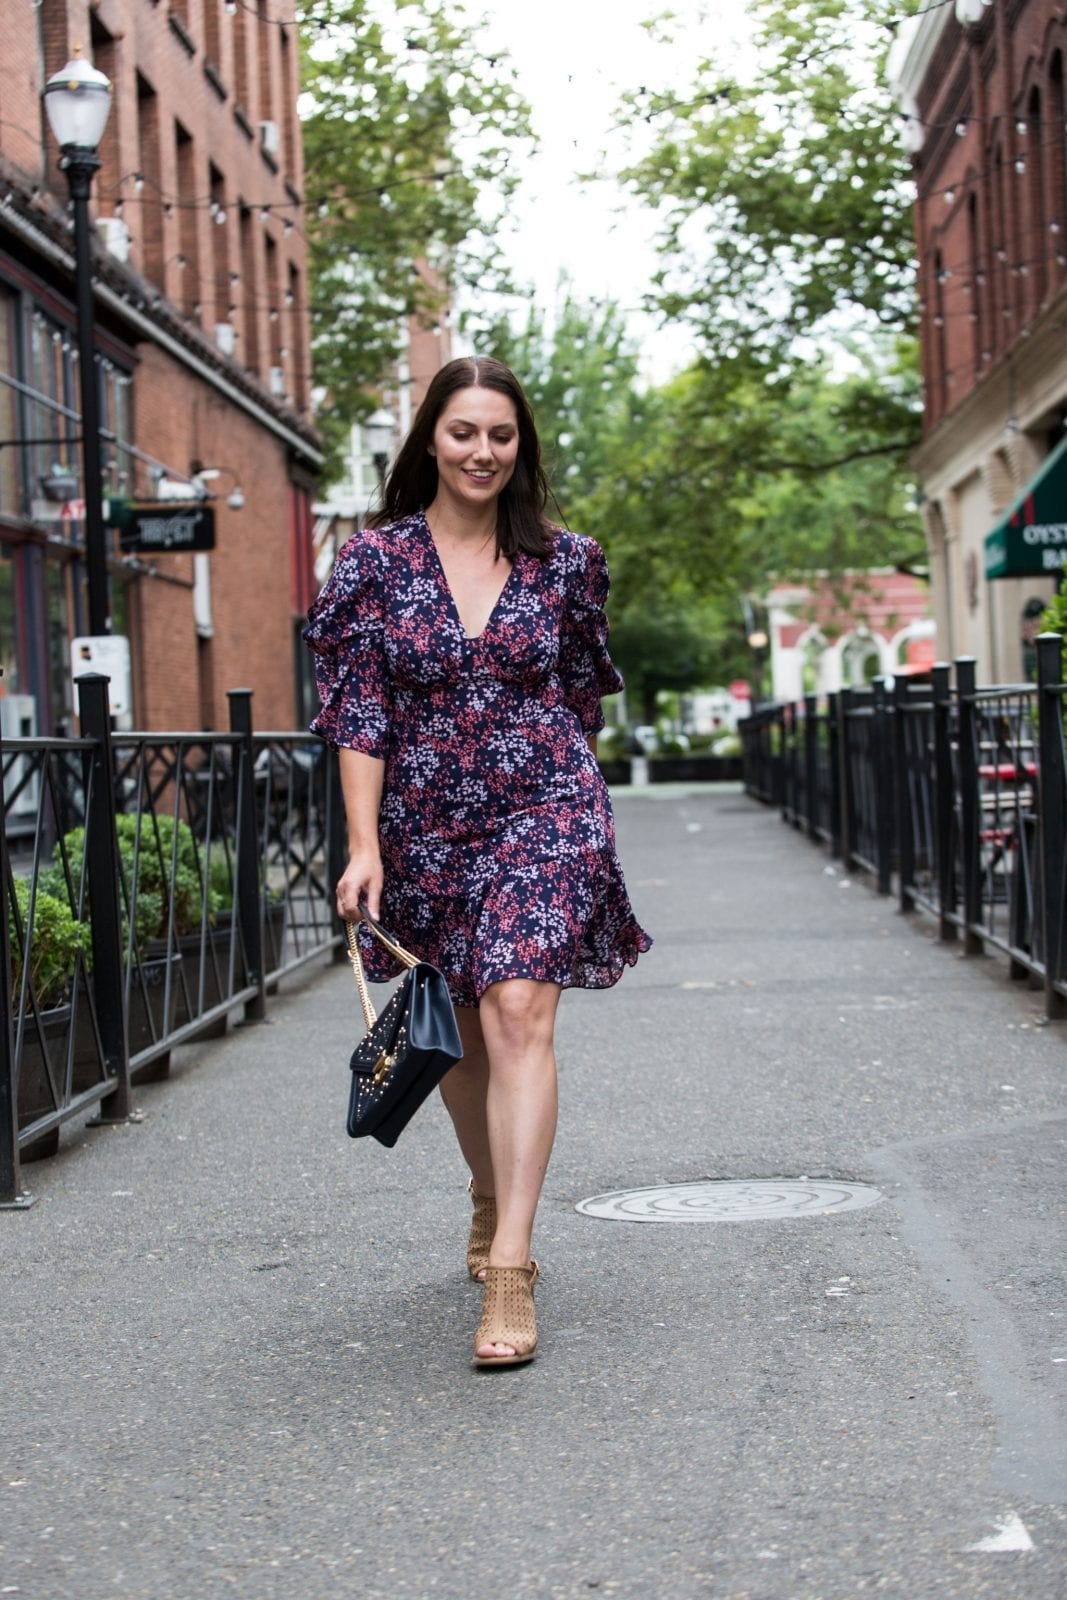 This is a full body shot of me walking down the street in a Michael Kors dress with some wedges from Francesca's.